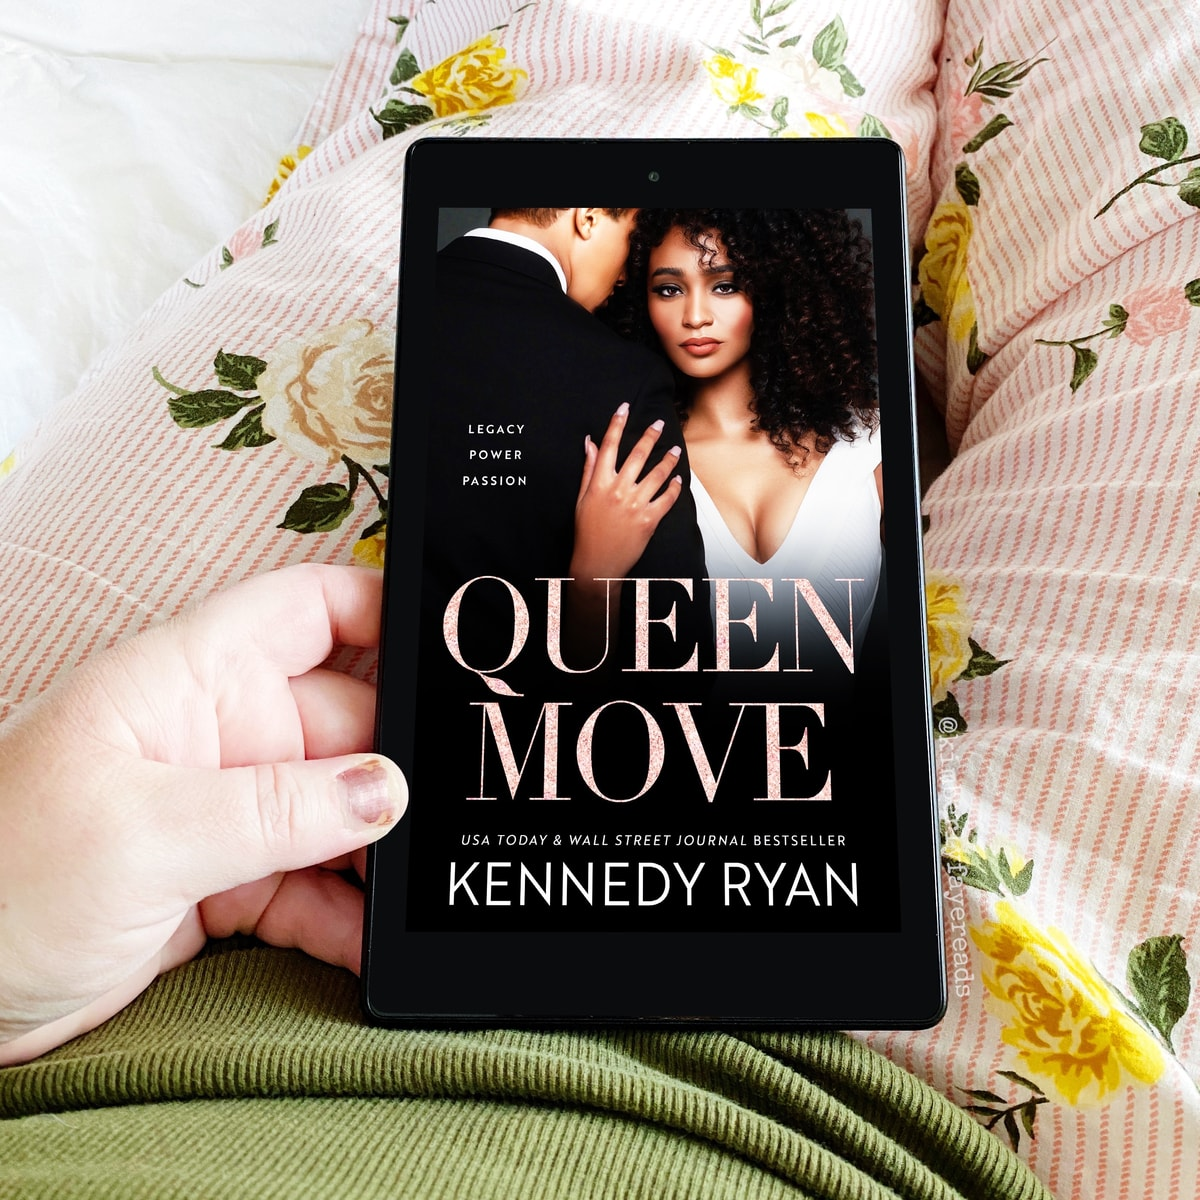 In Review: Queen Move by Kennedy Ryan